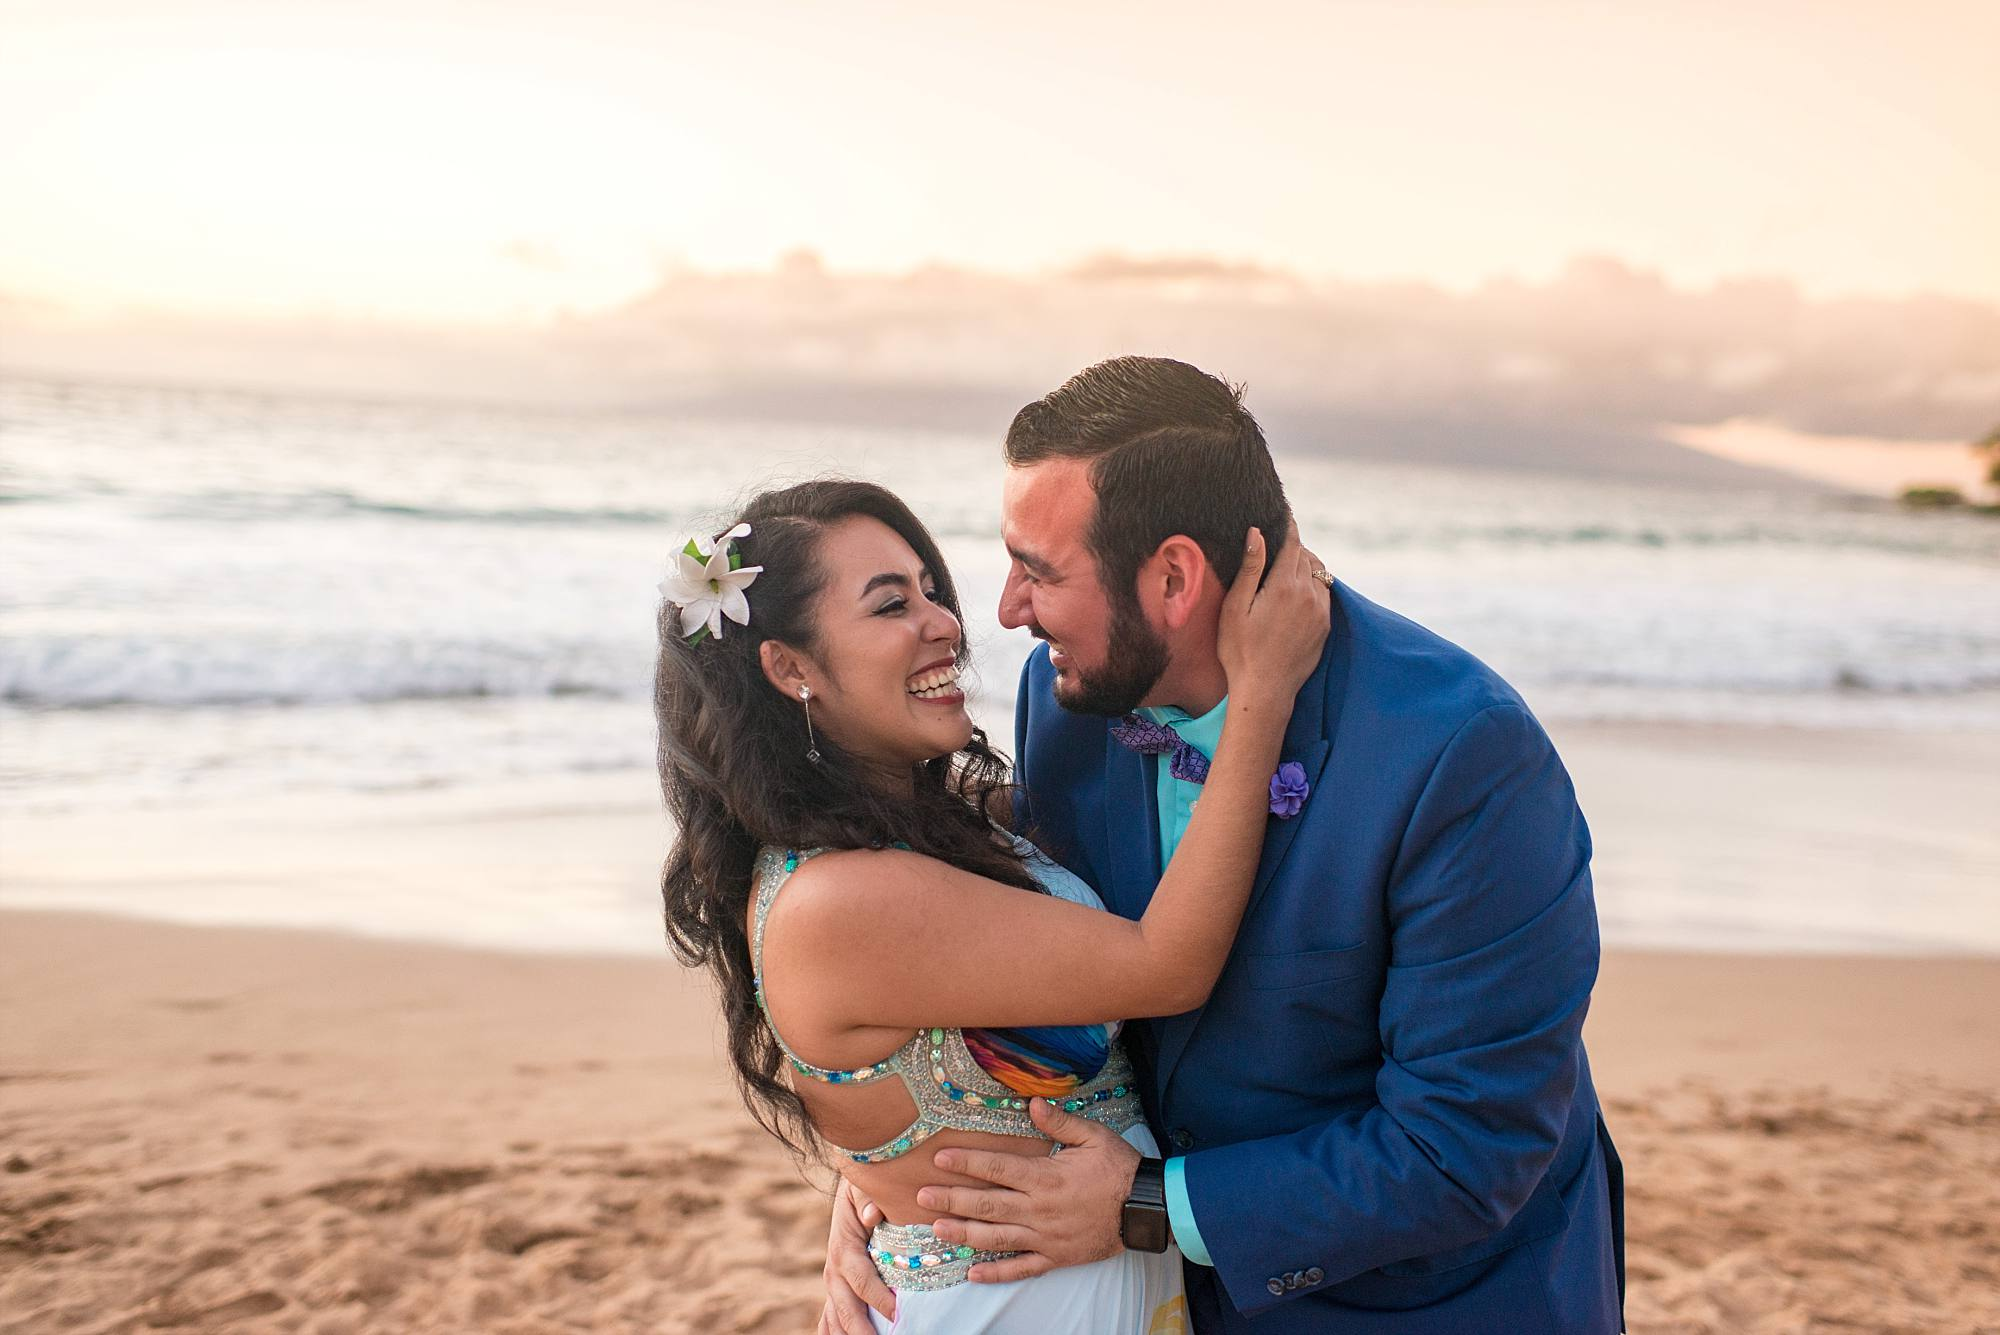 newly engaged couple, man going in for the kiss, Maui beach